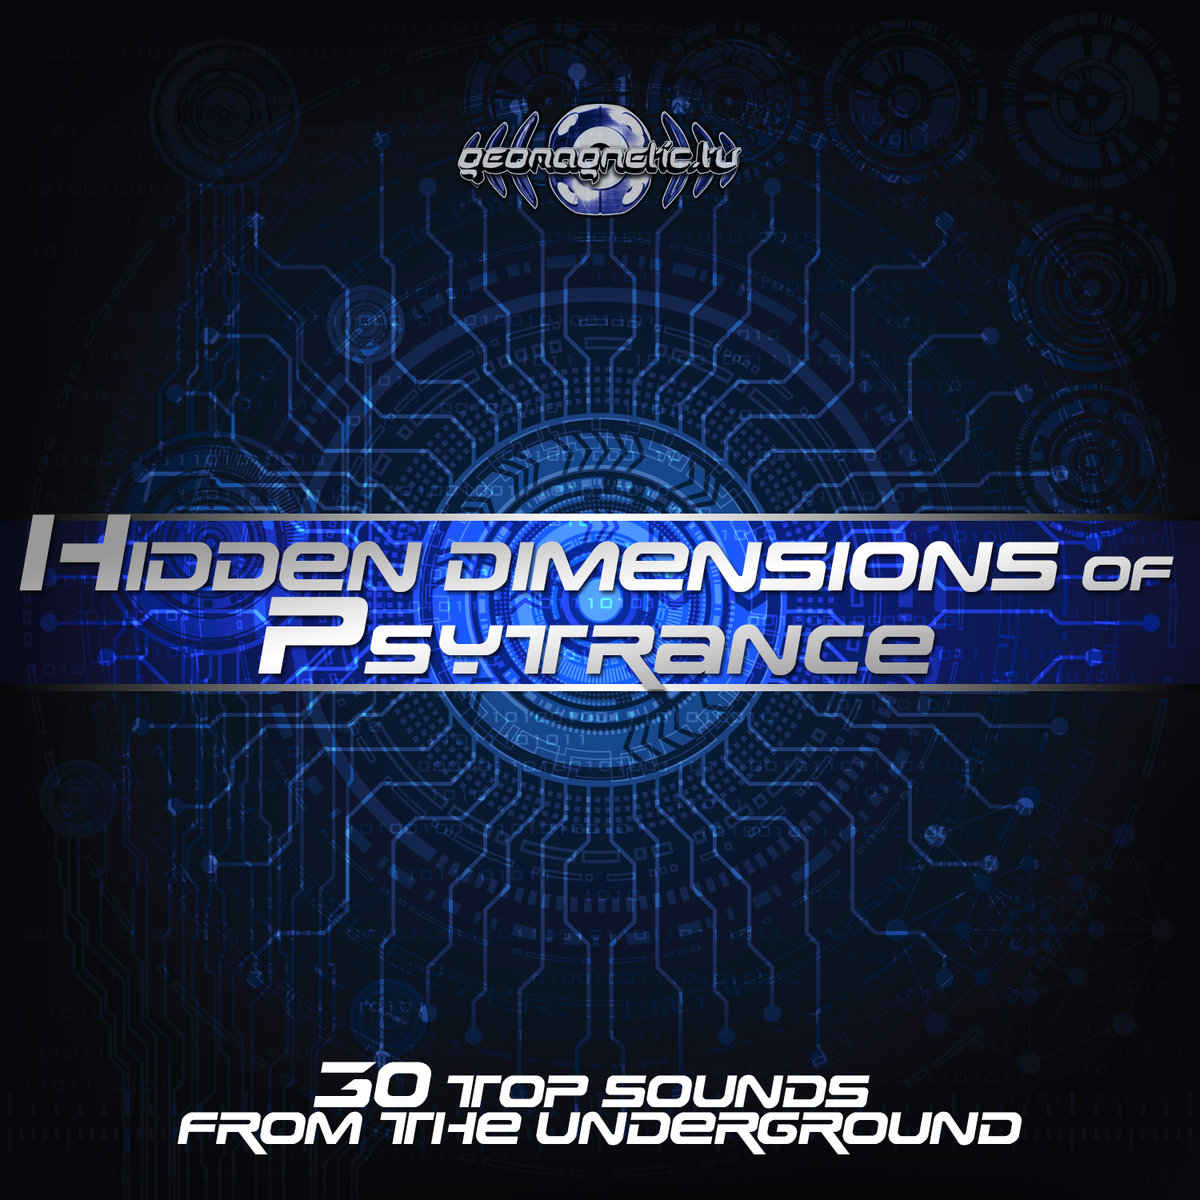 eXtended Memory - Ohmicide LSD @ 'Various Artists - Hidden Dimensions of Psytrance (30 Top Sounds From The Underground)' album (electronic, goa)